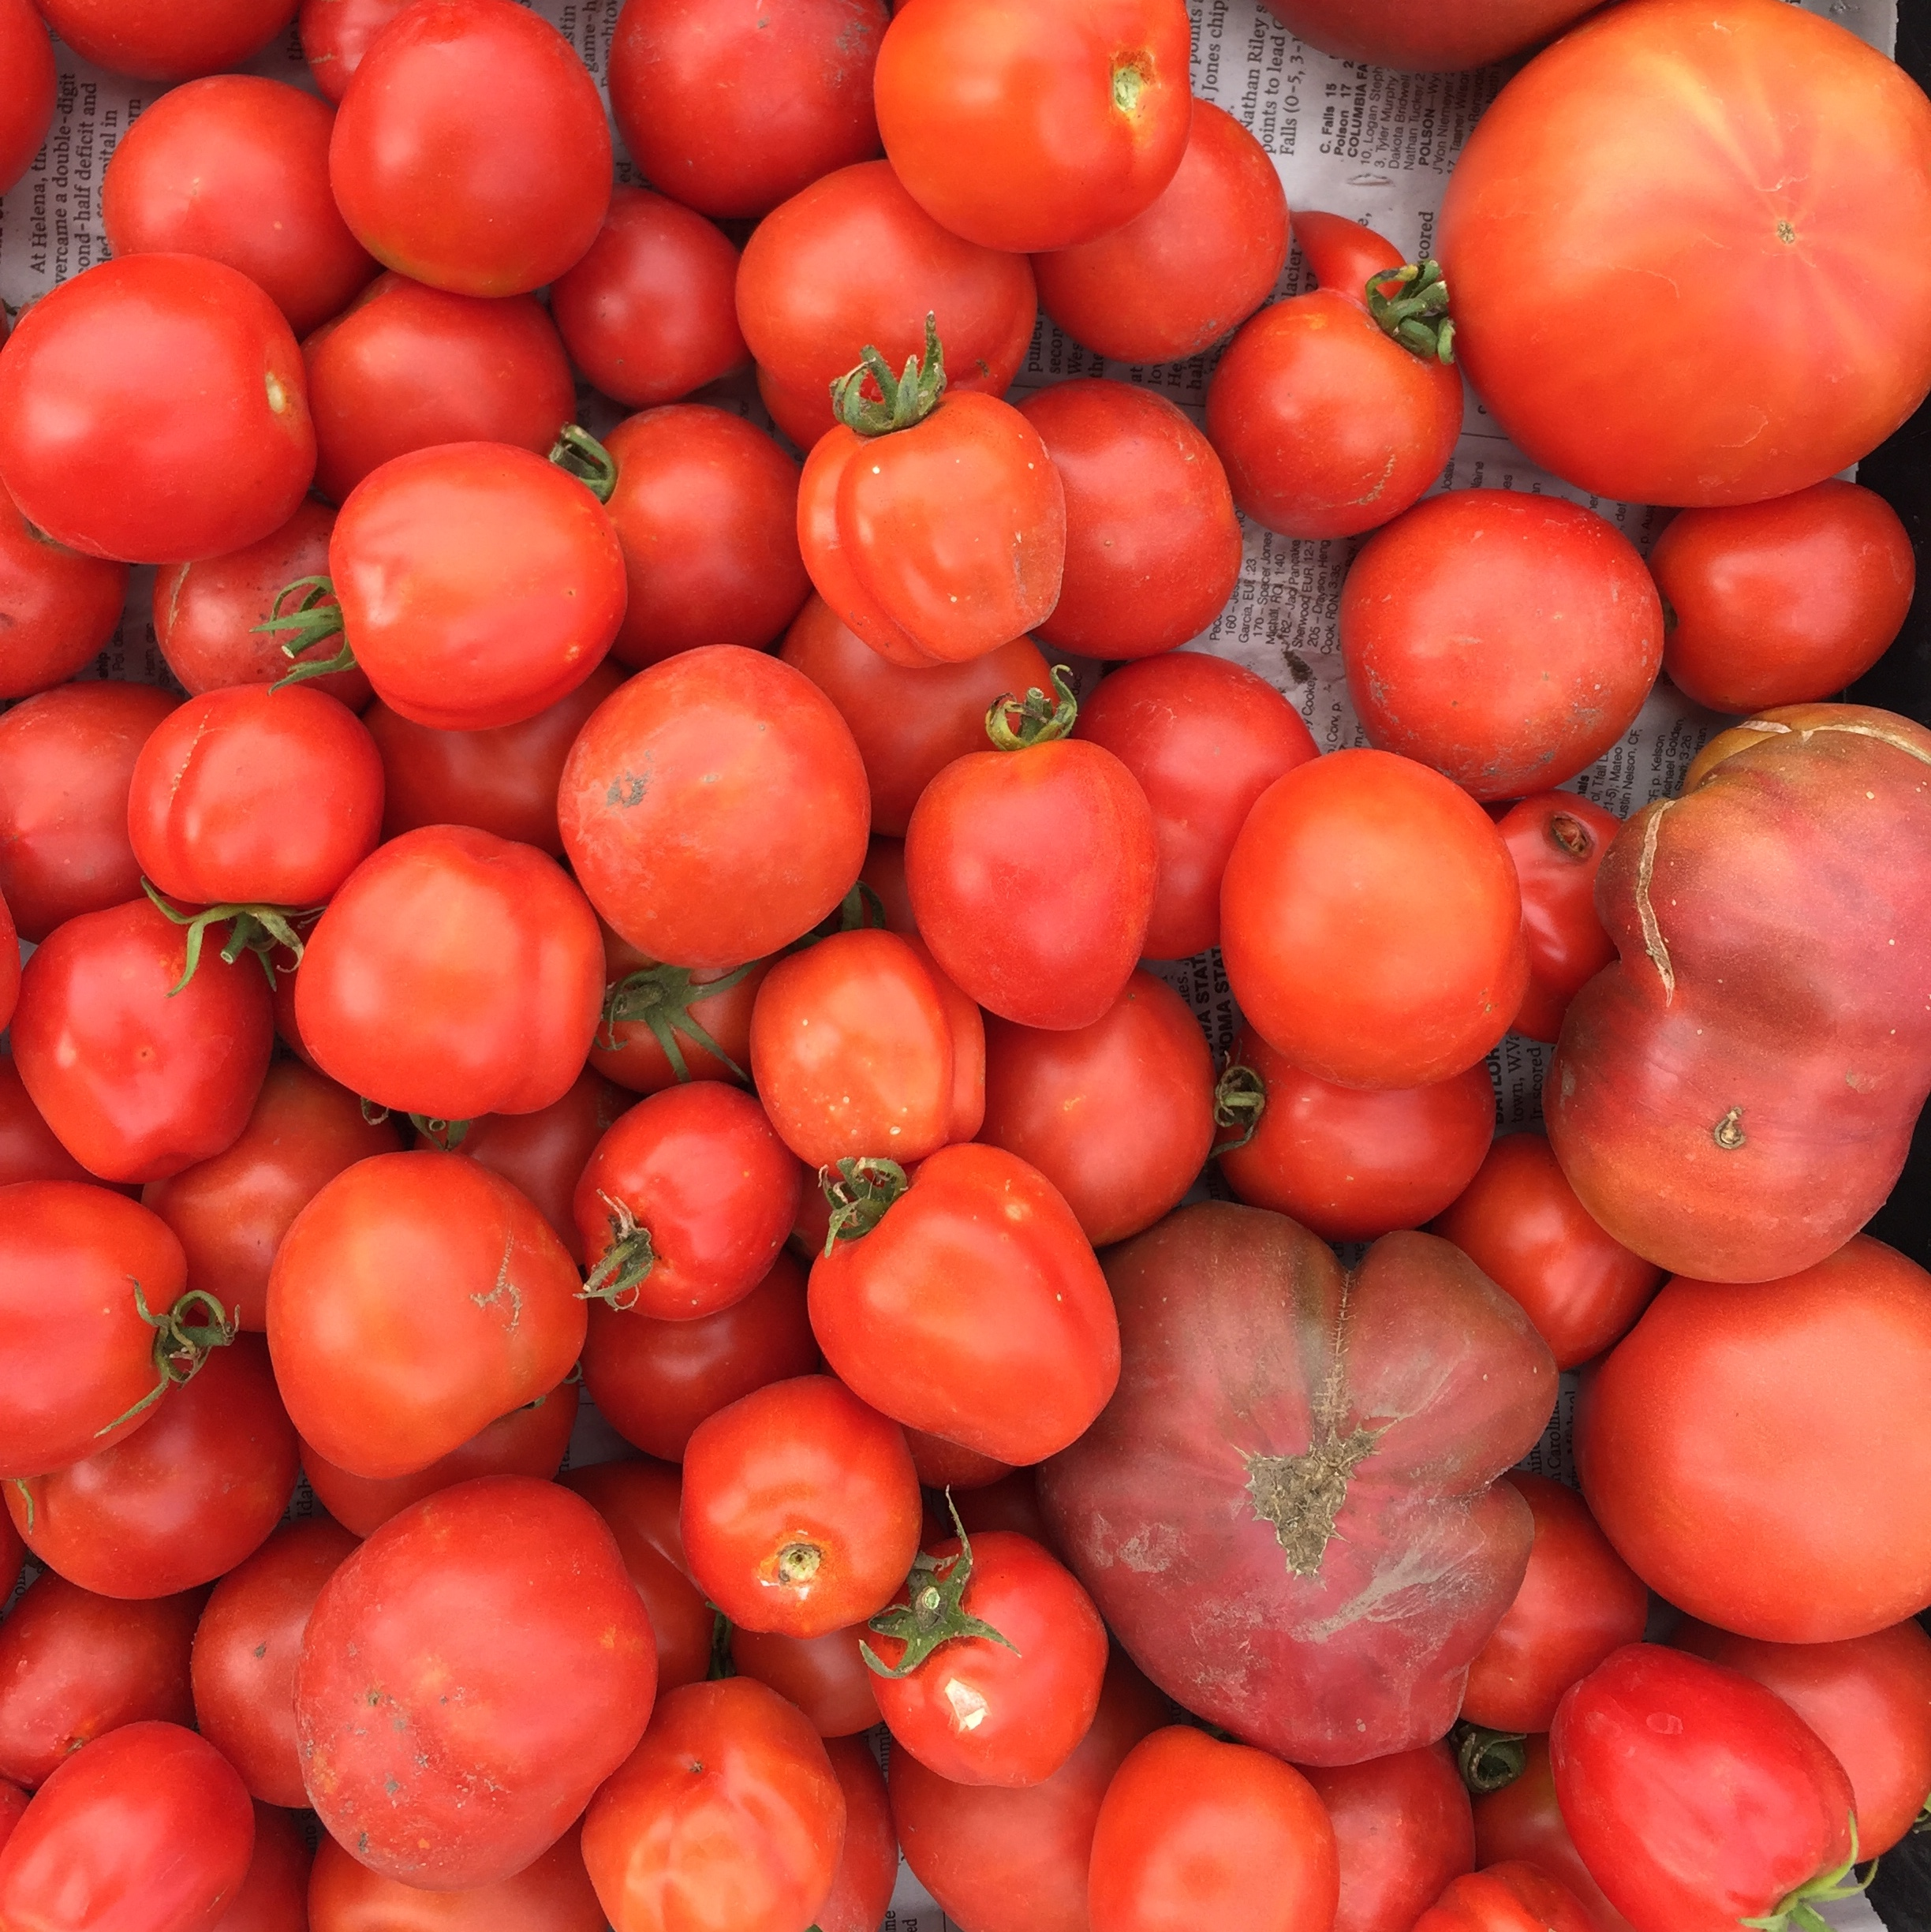 Tomatoes from River Road Farm